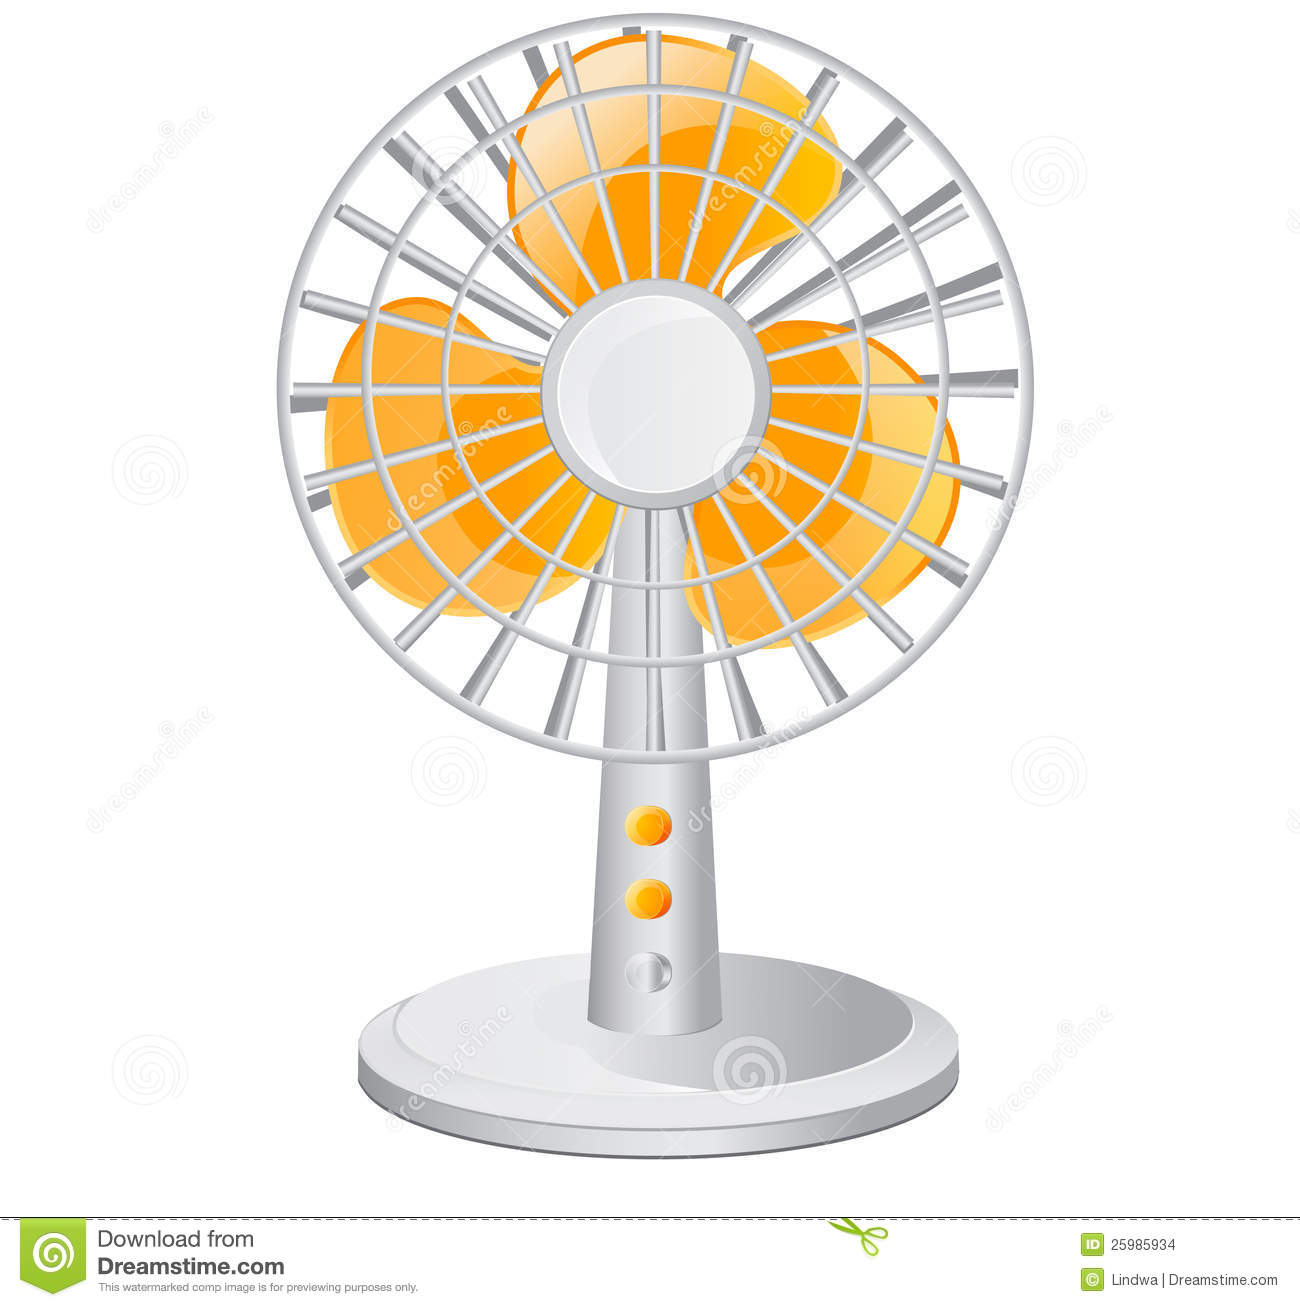 Electric Table Fan Stock Images - Image: 25985934